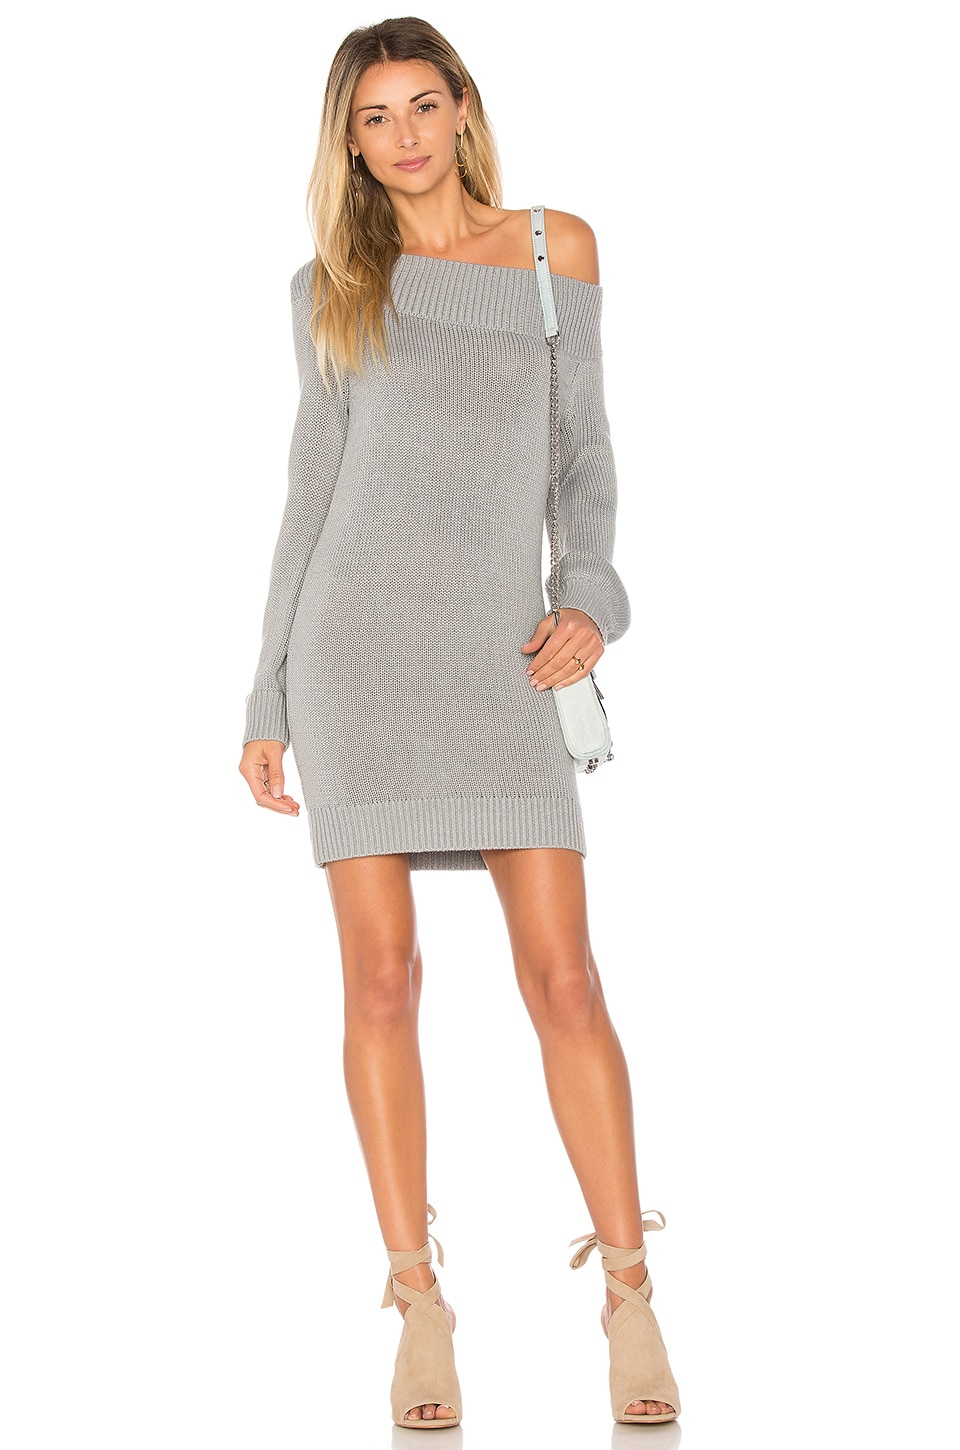 X REVOLVE Fun Seeker Sweater Dress by Lovers + Friends